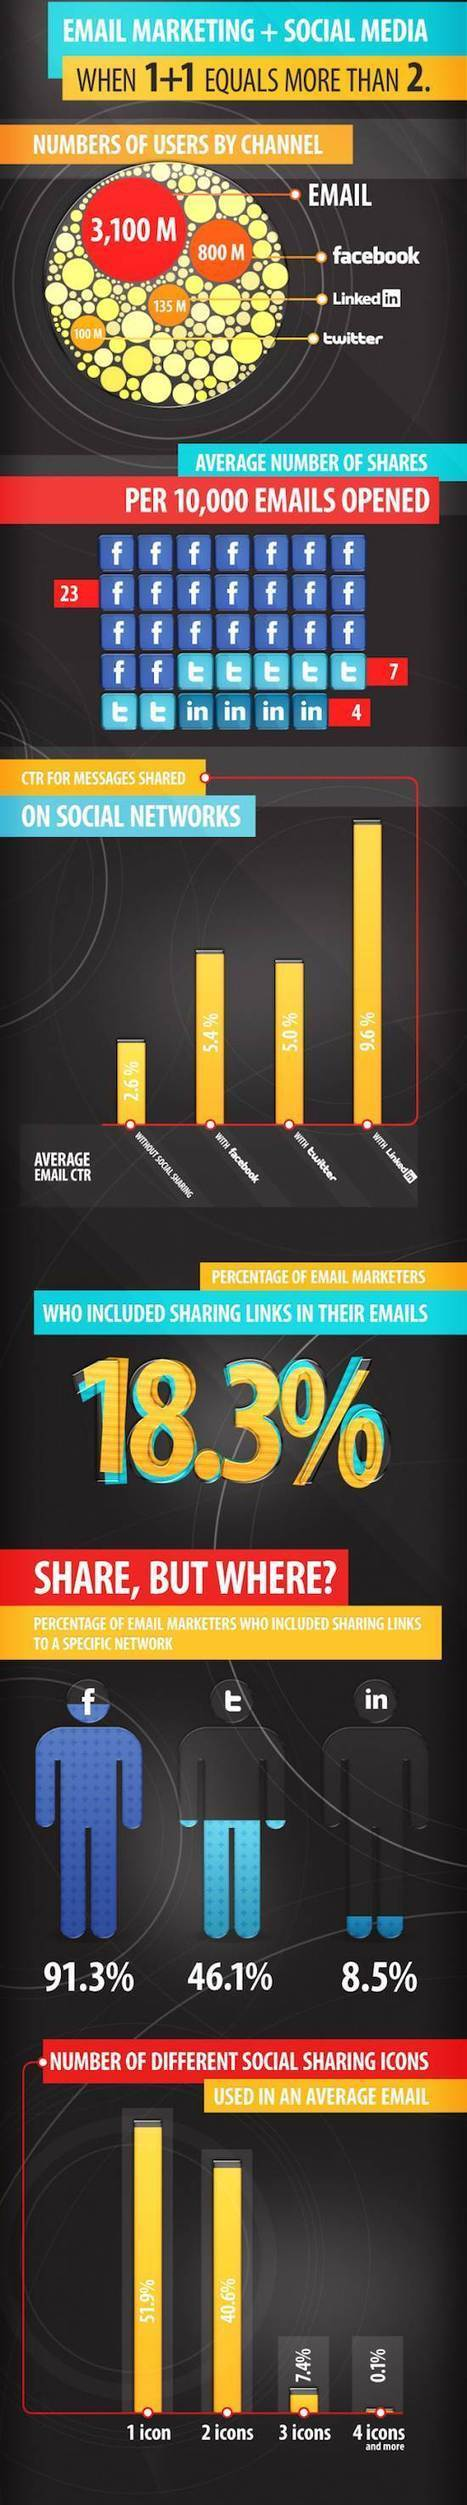 Social Sharing and Email Marketing - Infographic | Social Media | Scoop.it